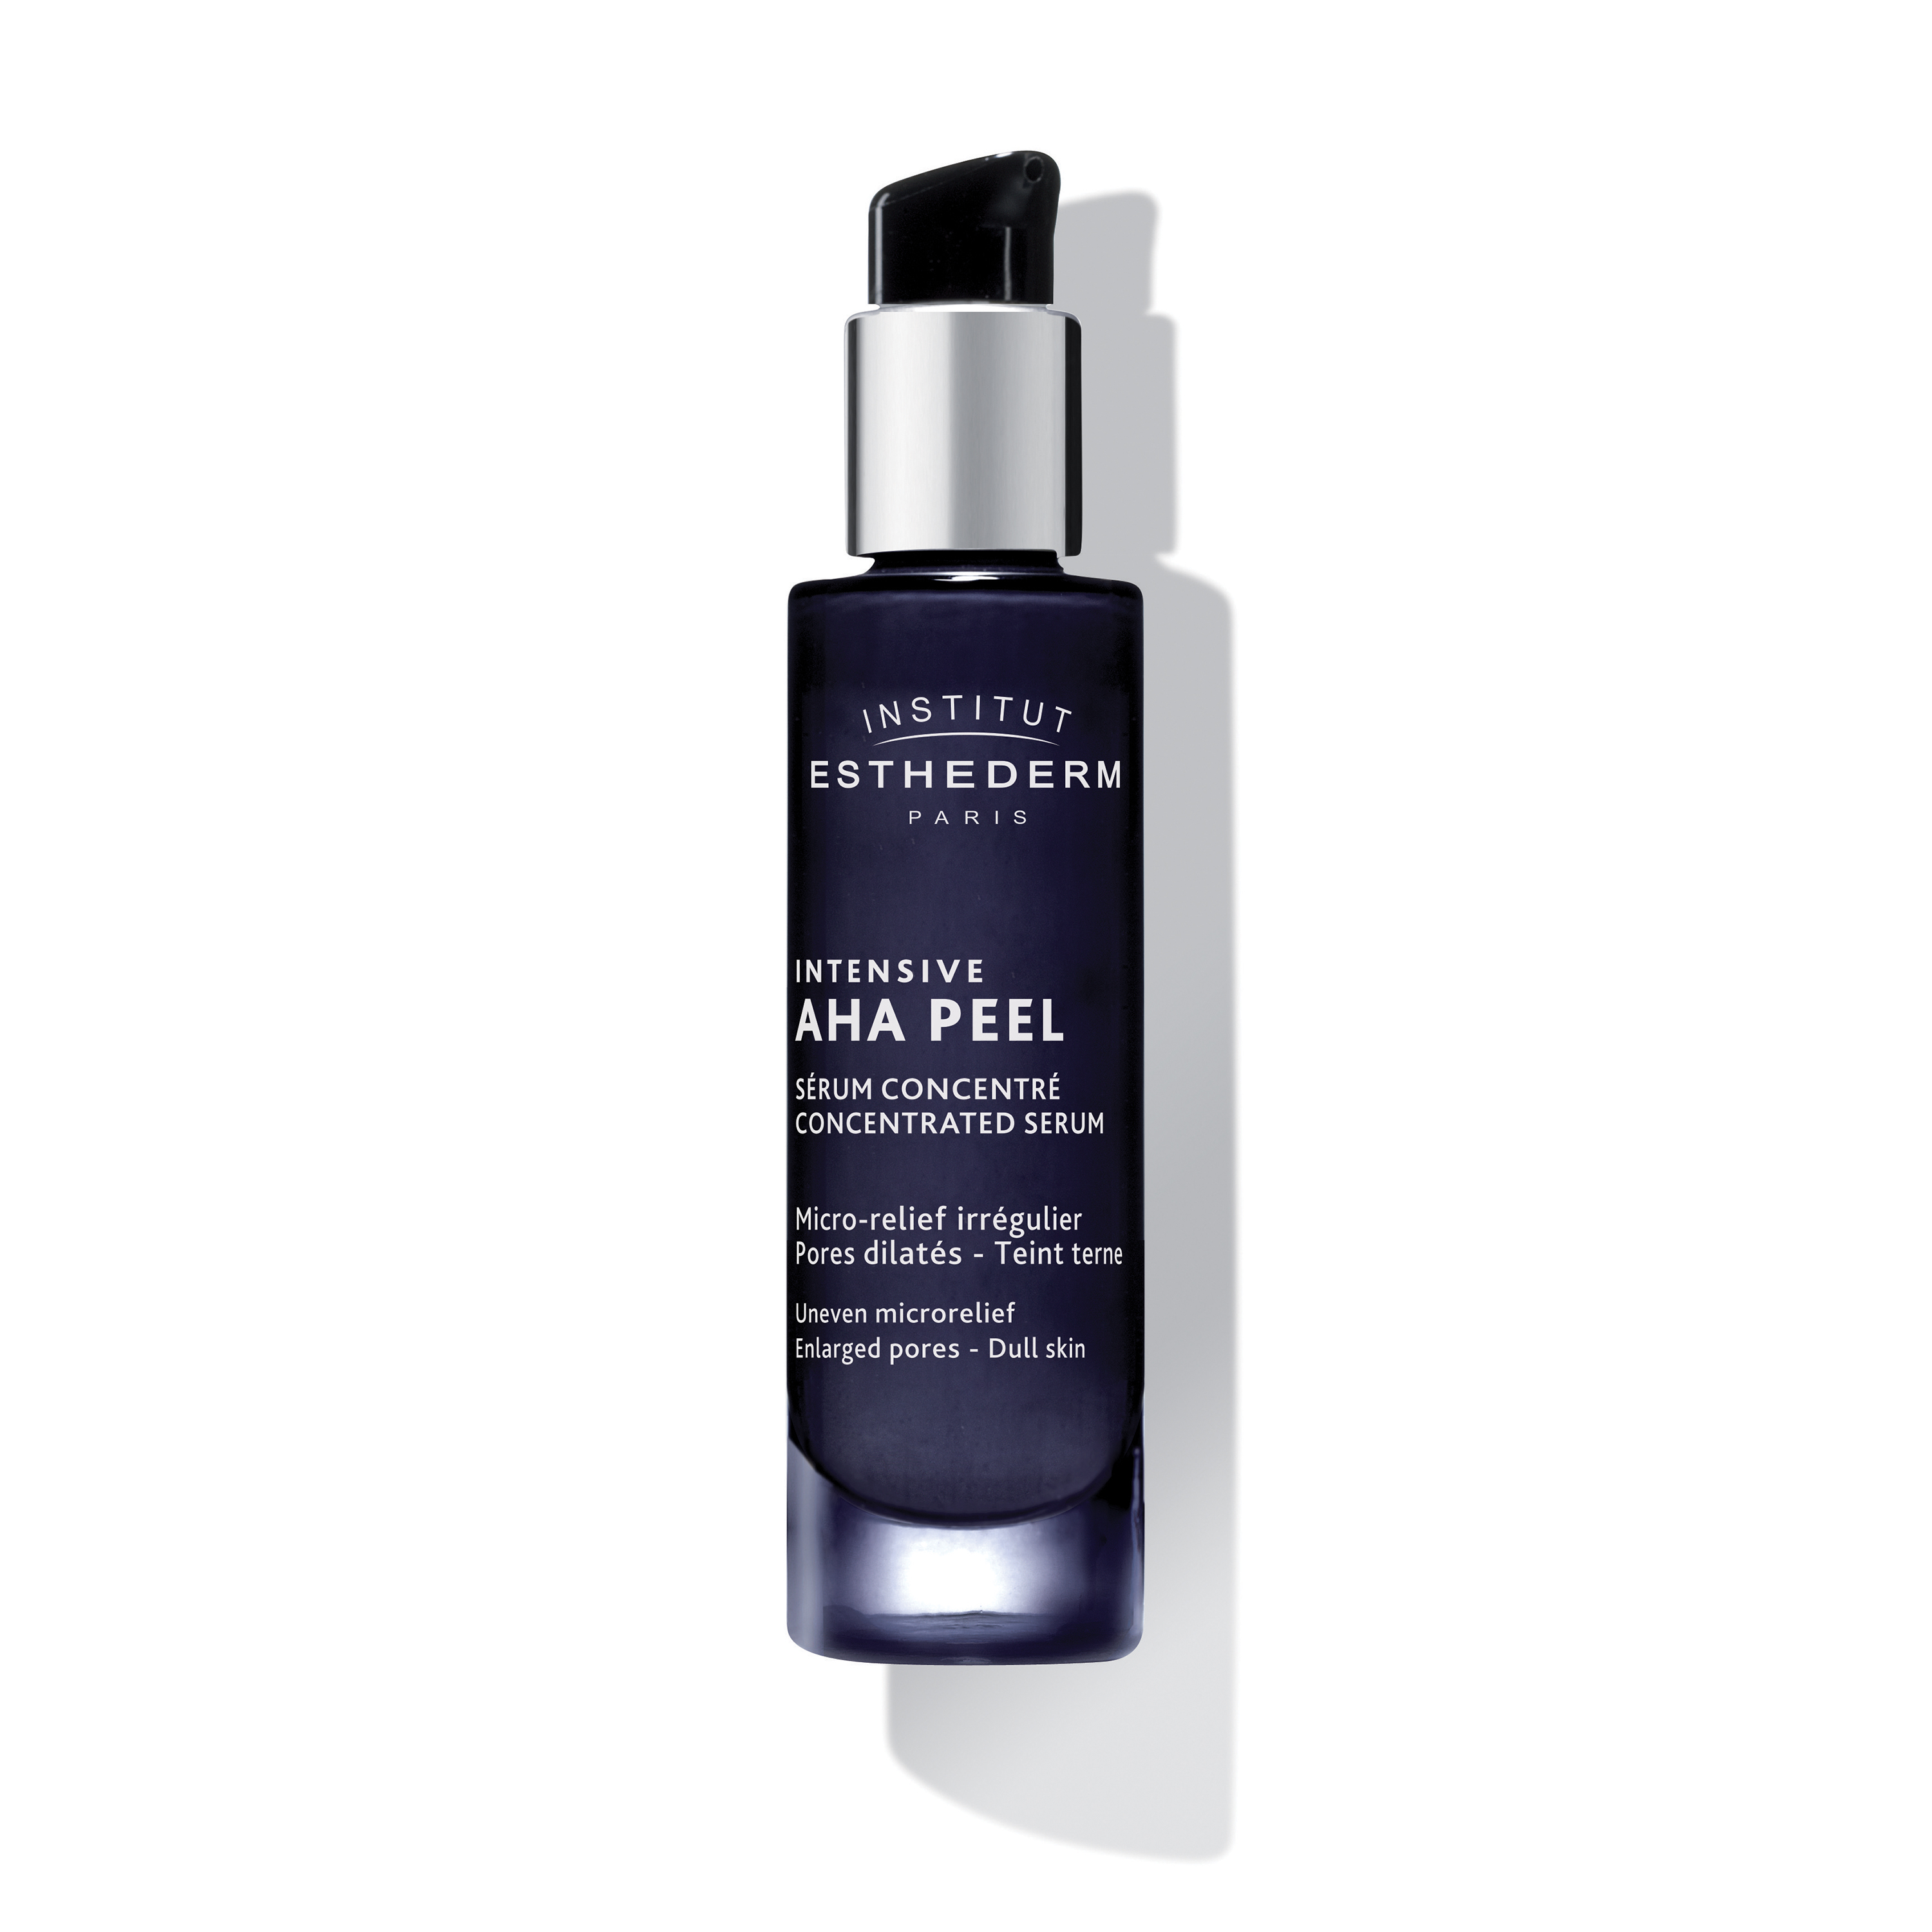 ESTHEDERM product photo, Intensive AHA Concentrated Serum 30ml, treats uneven skin texture and pores, AHA and BHA, peeling